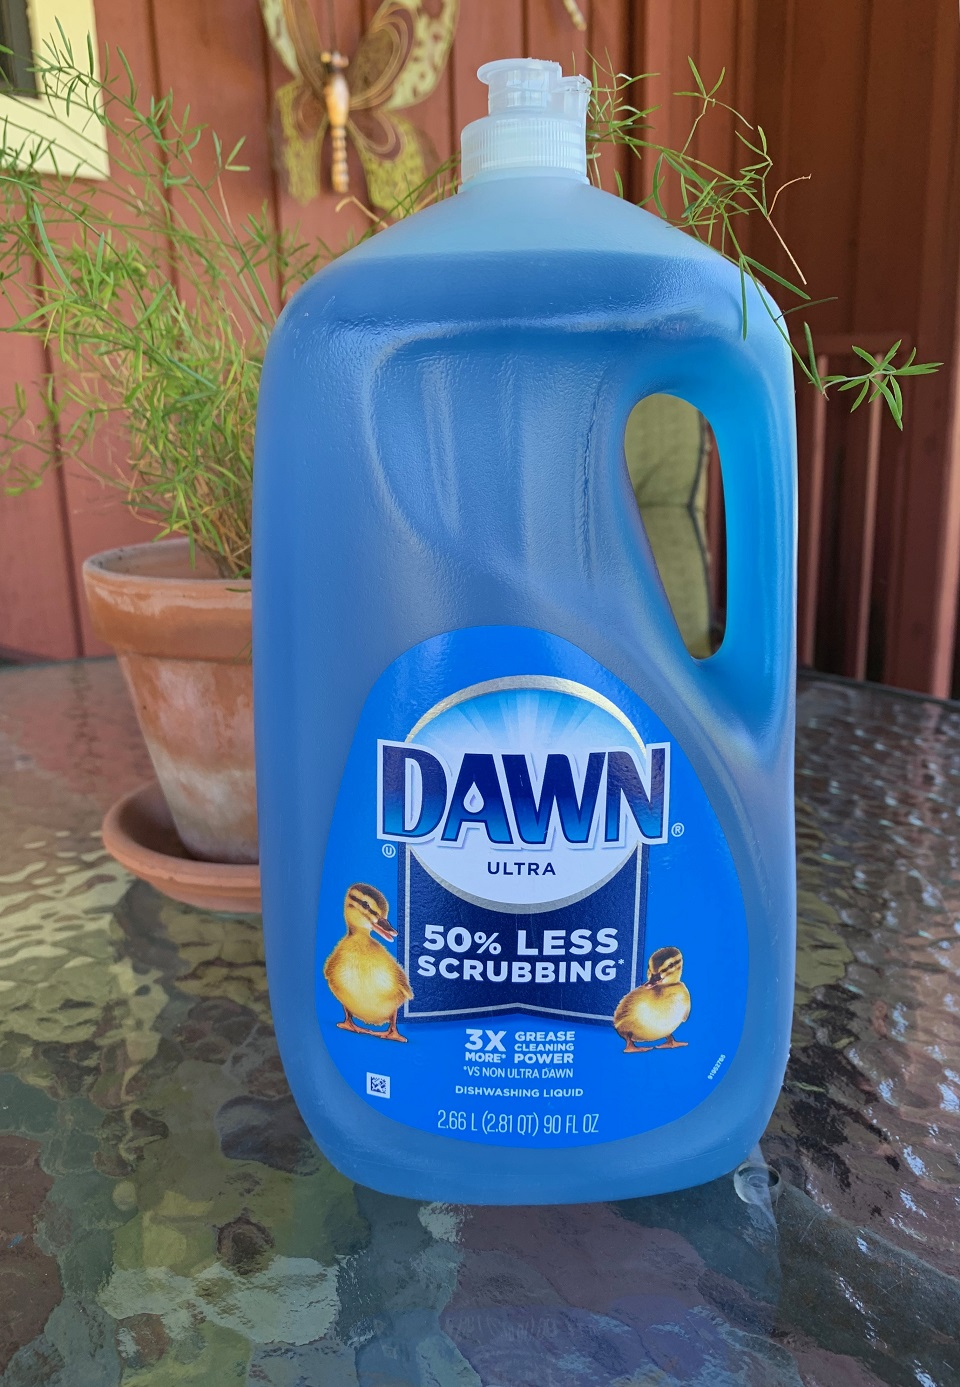 Dawn Ultra for less scrubbing. Get done Faster. #ad #DawnatSamsClub